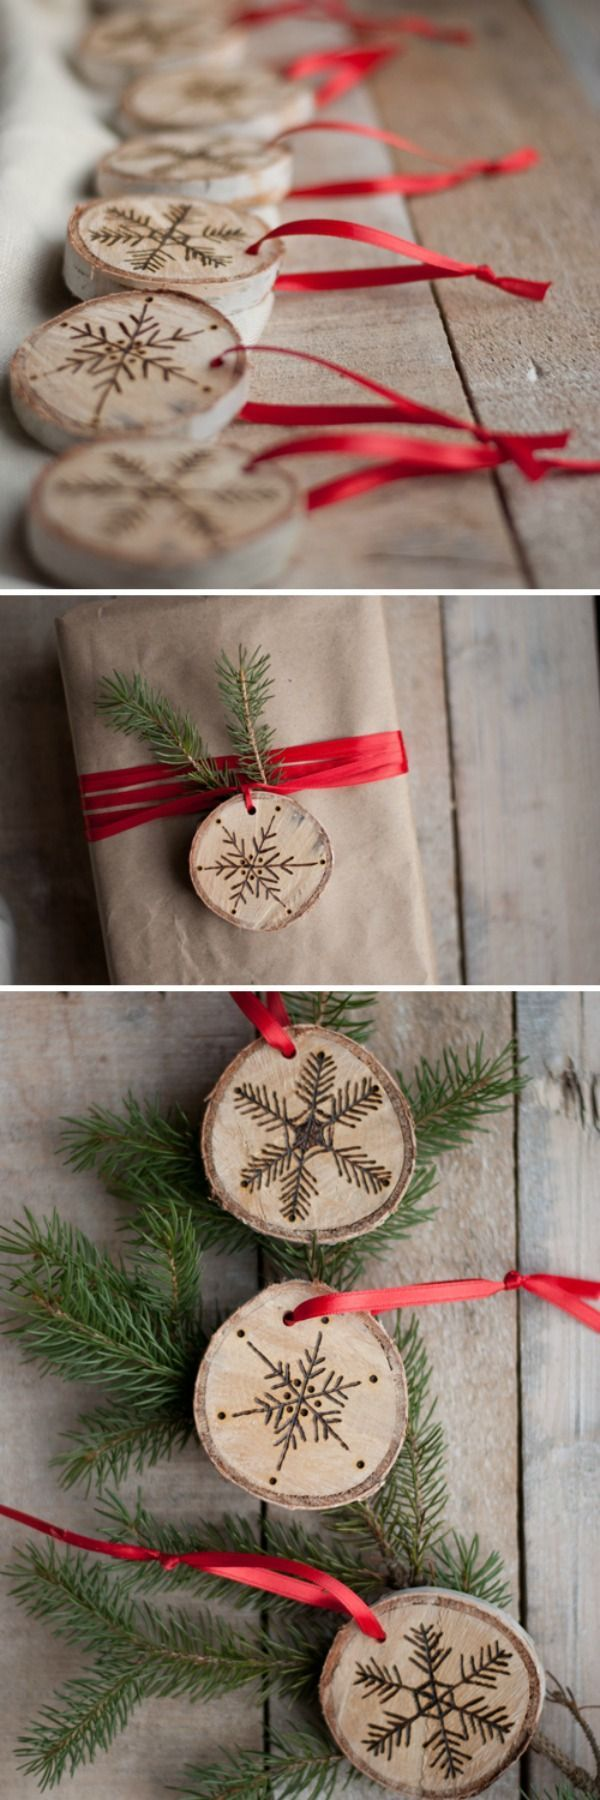 65 Most Outstanding DIY Ornament Ideas For Christmas - Most Wanted Idea